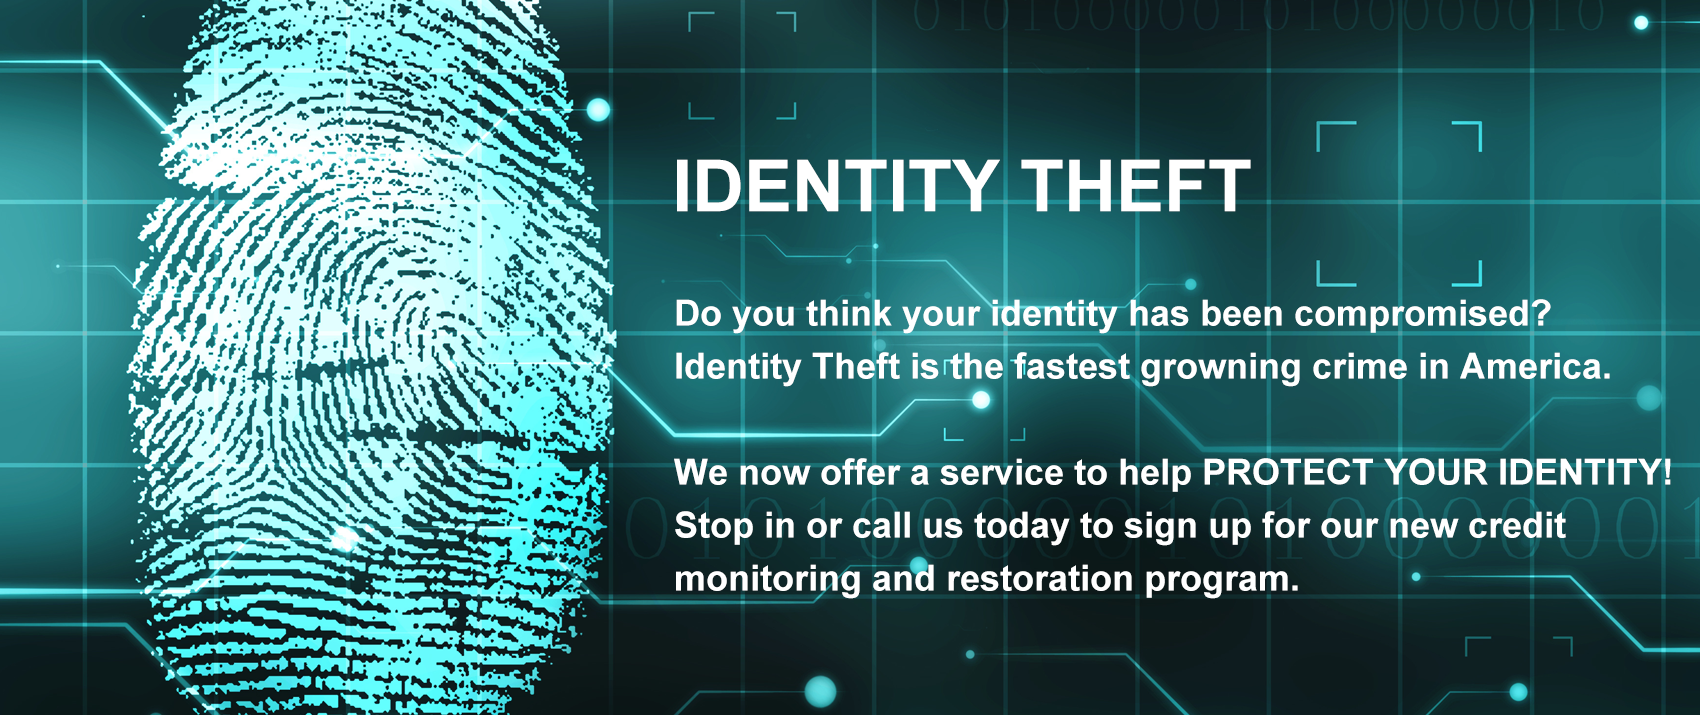 Identity Theft is growing in America